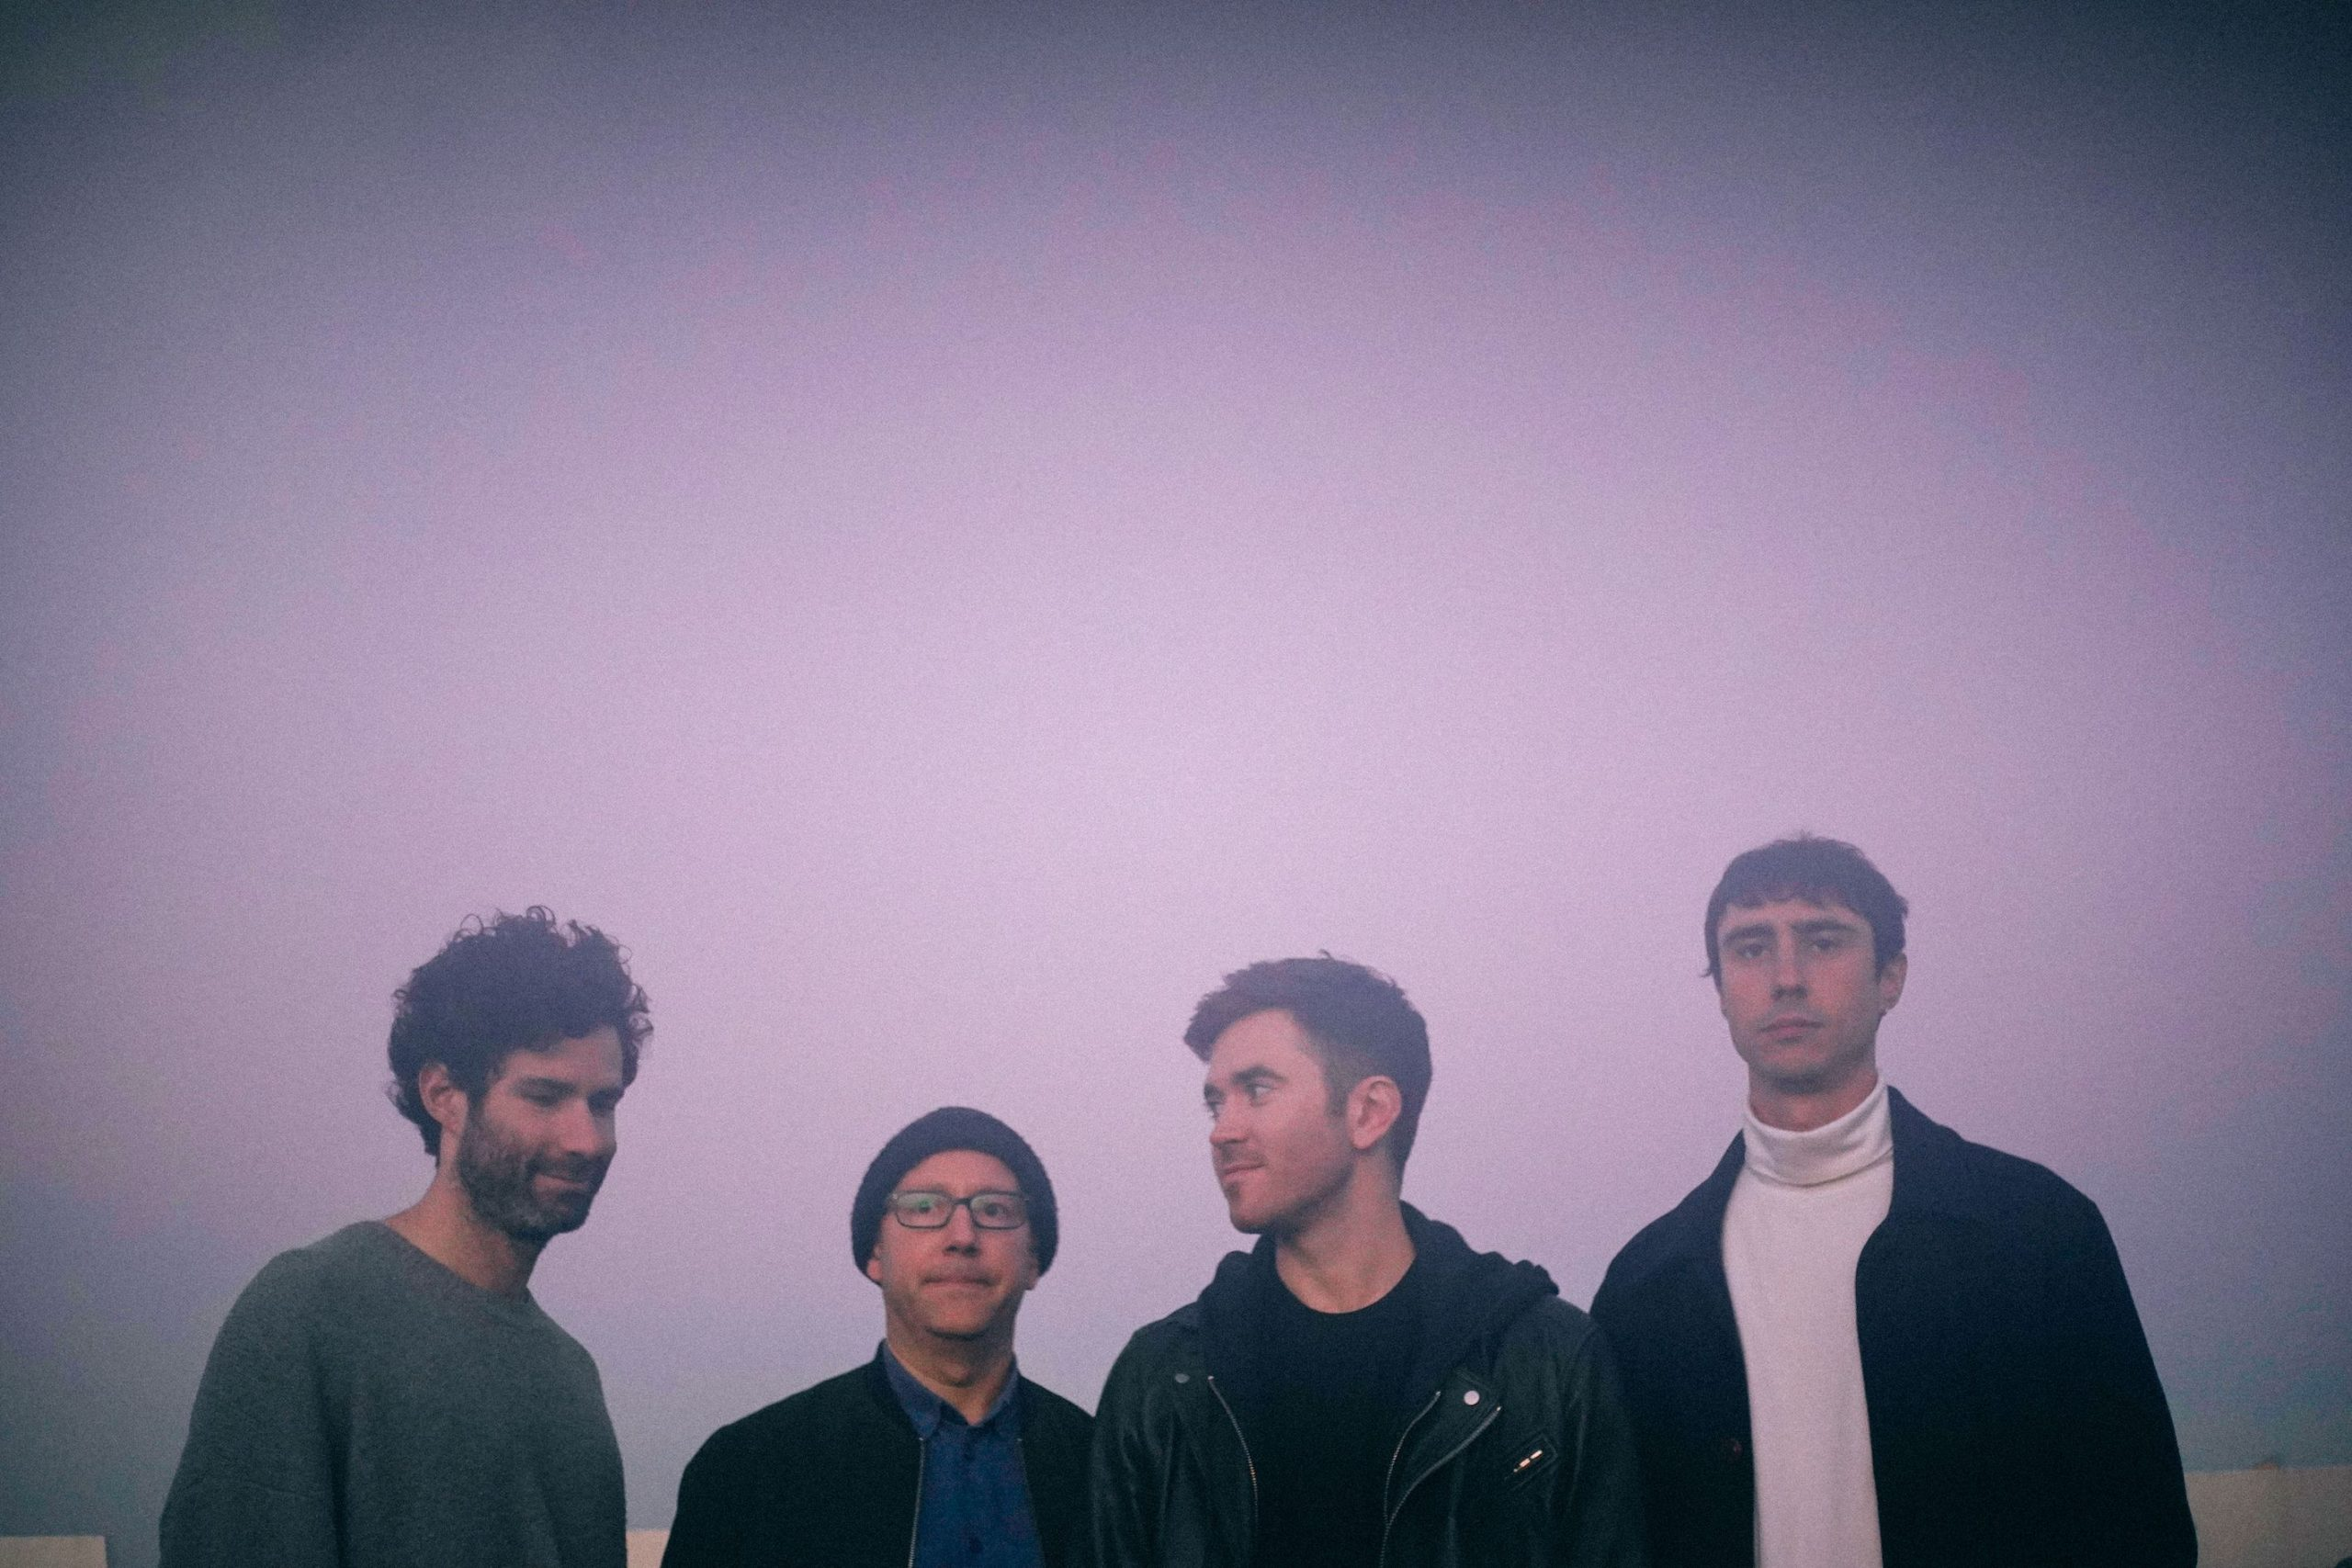 Zola Blood, Credit: Alex Kozobolisl